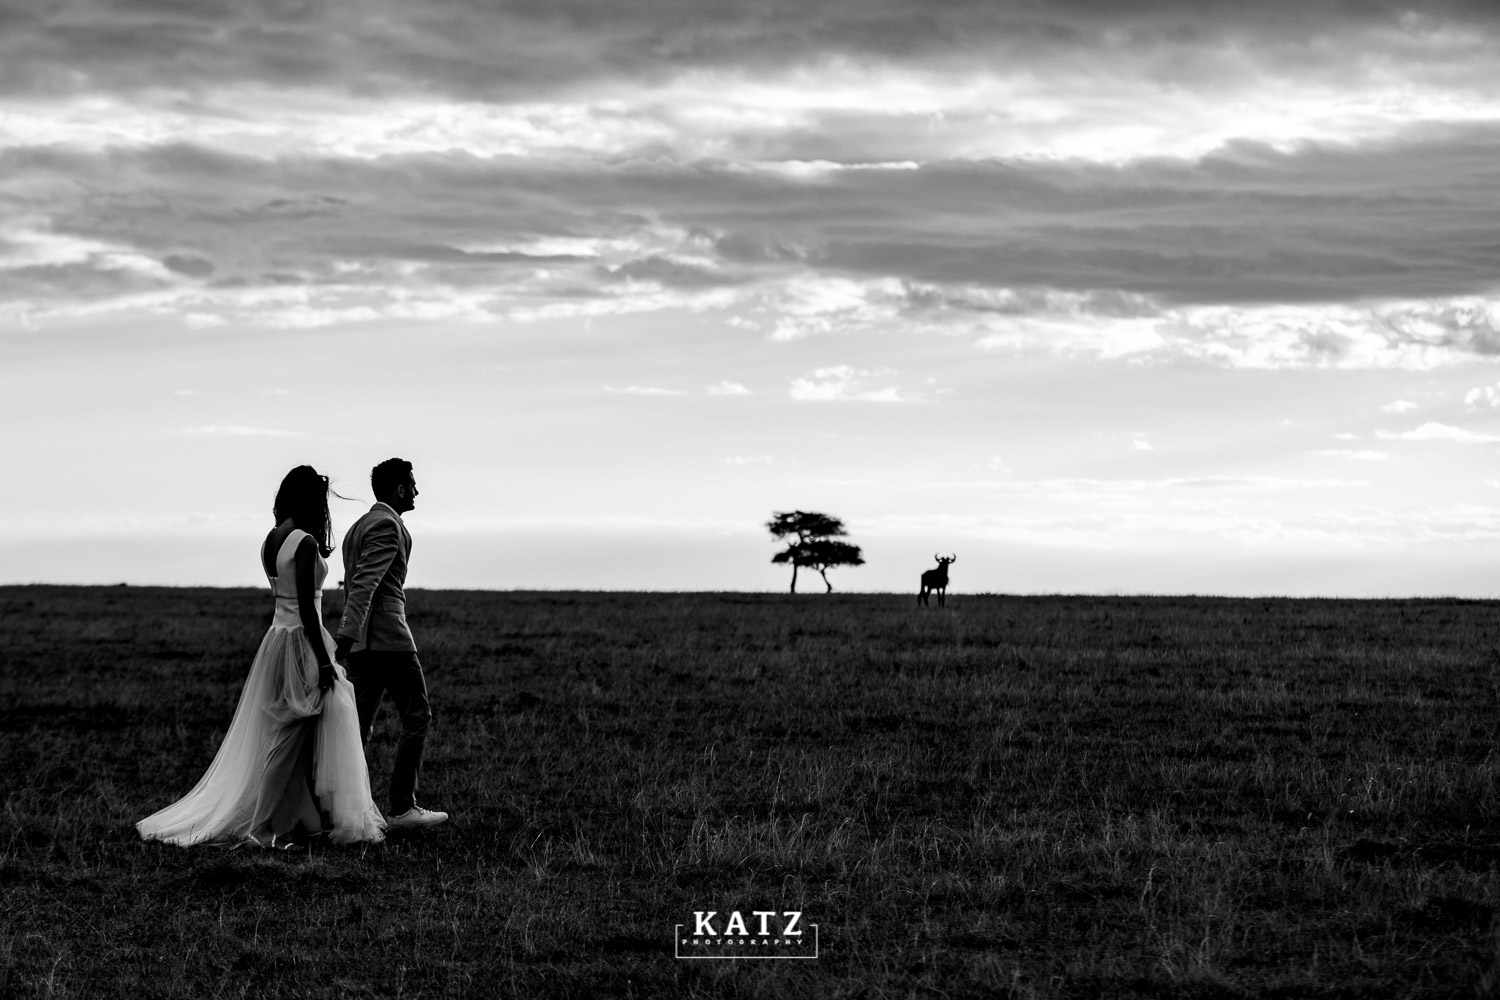 Kenya Wedding Photographer Destination Wedding Photographer Katz Photography Kenya 1